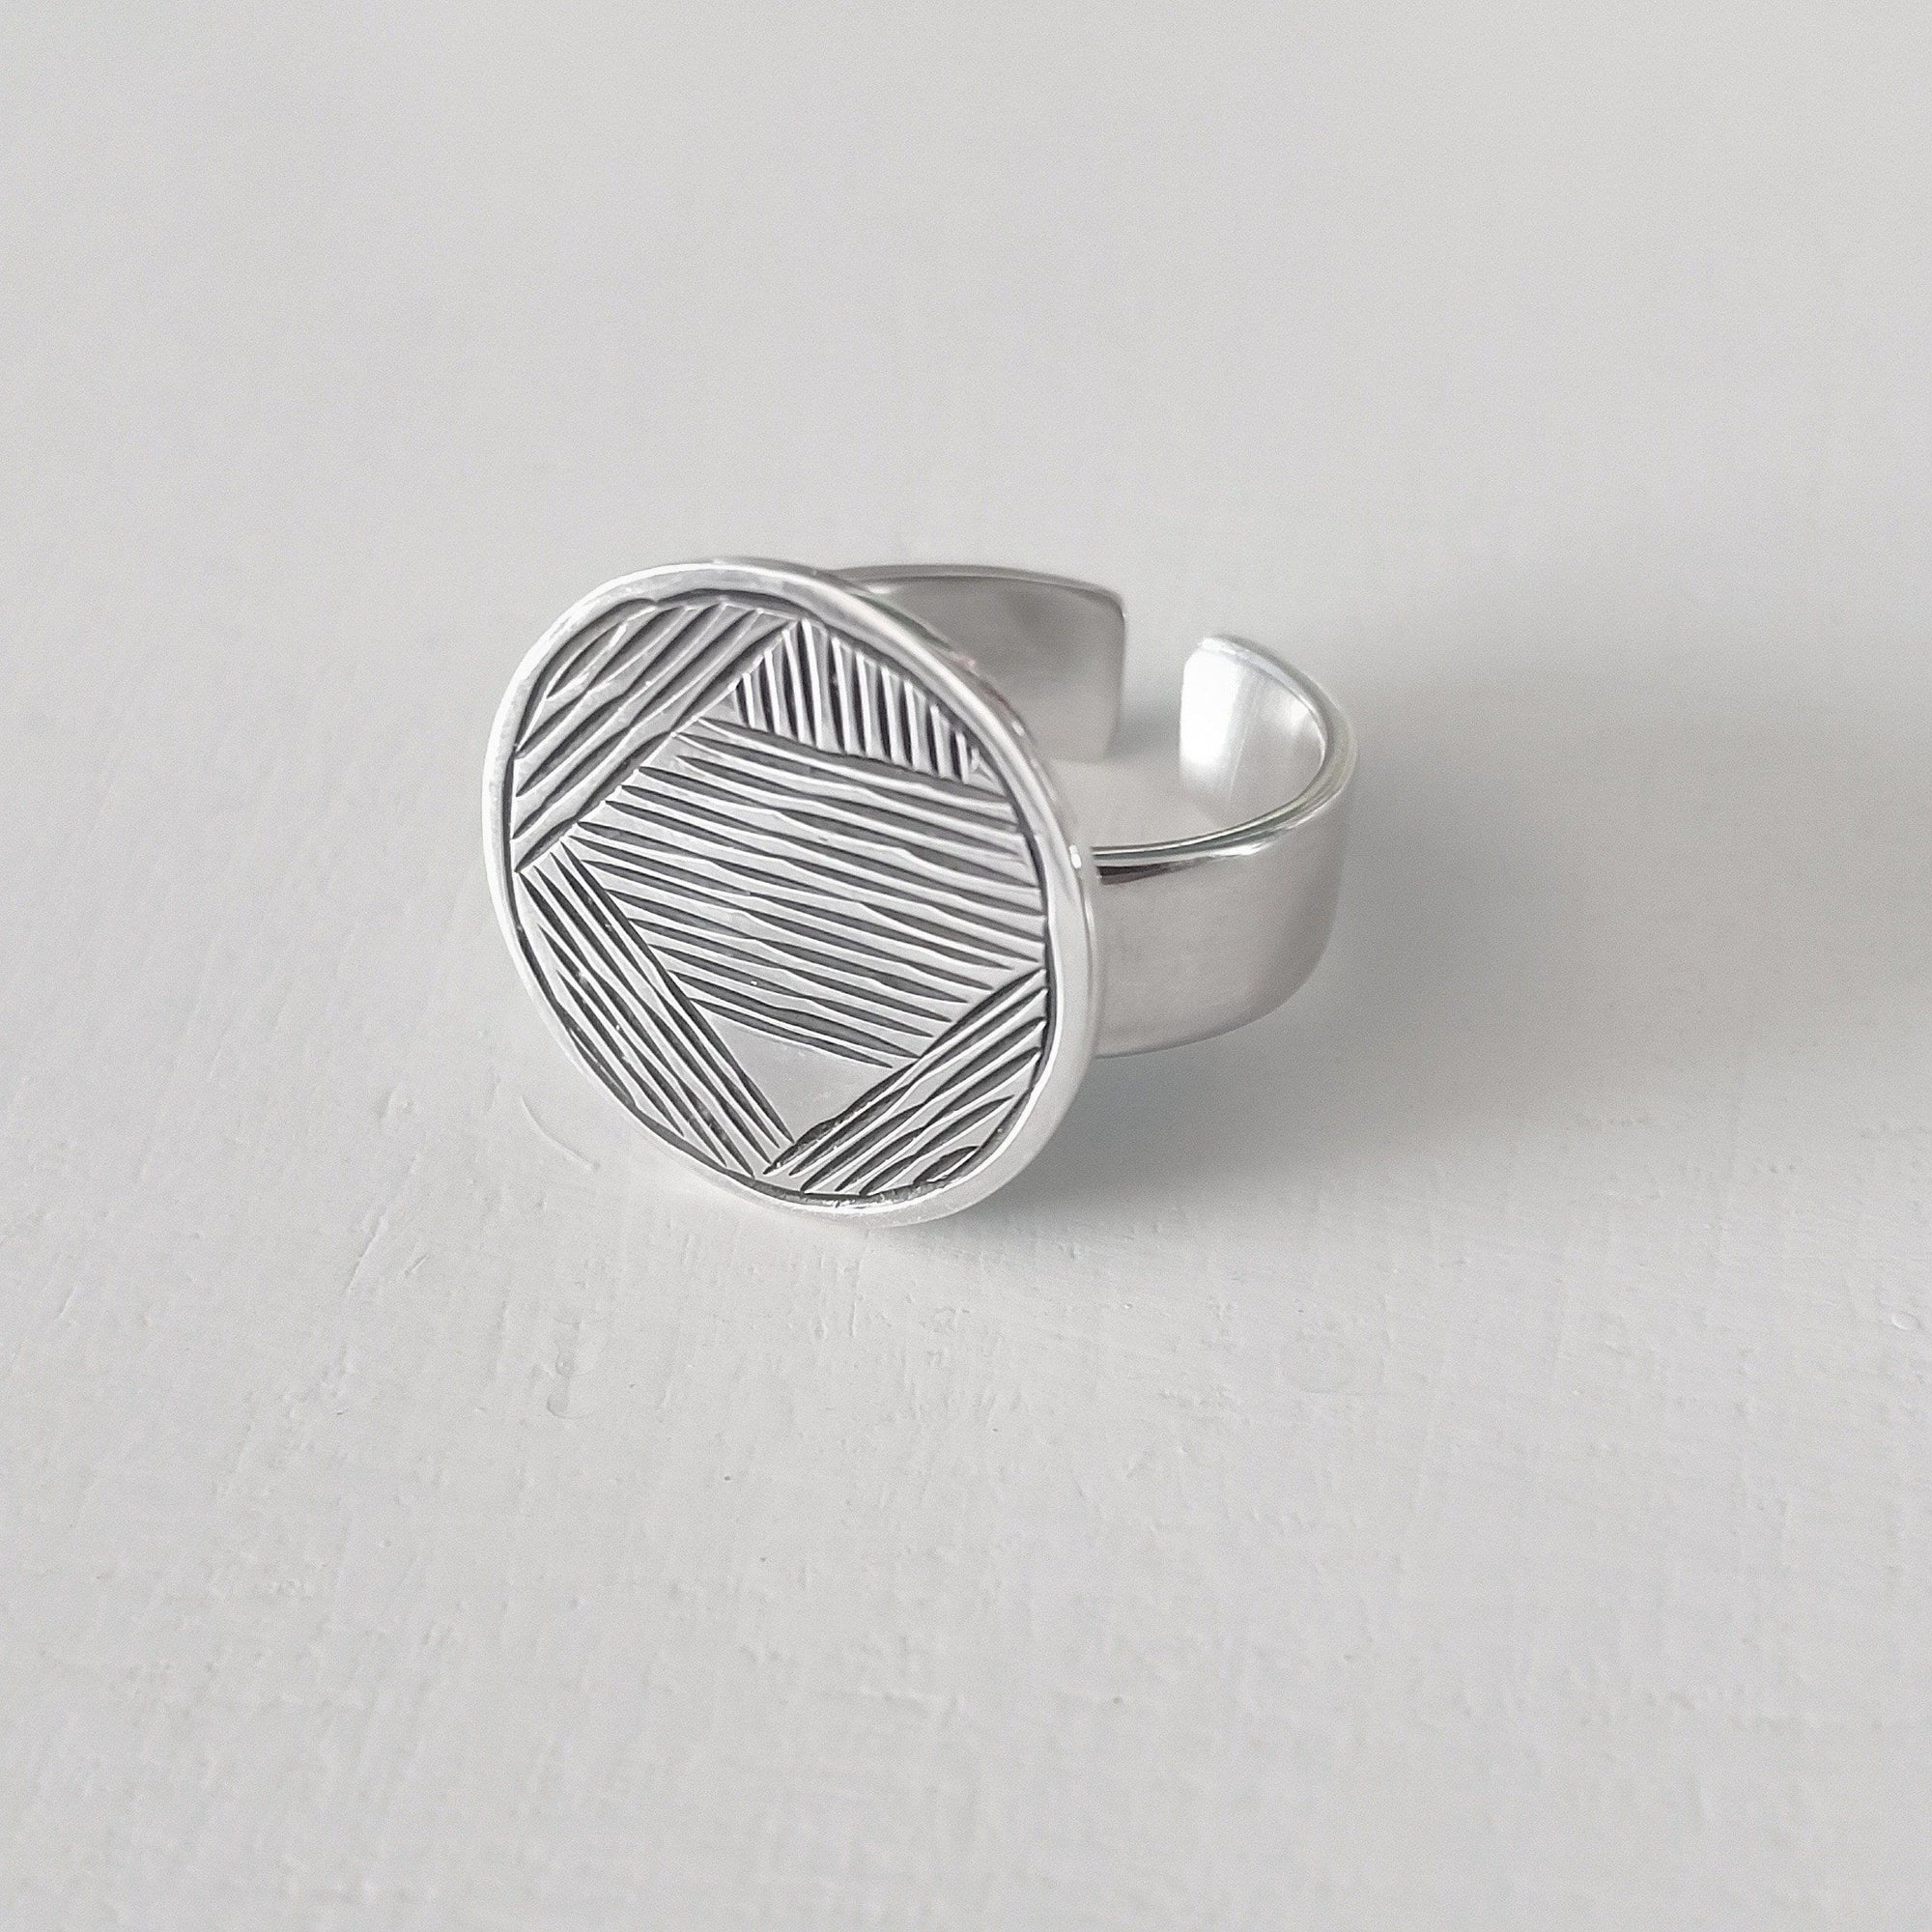 Tafukt Ring